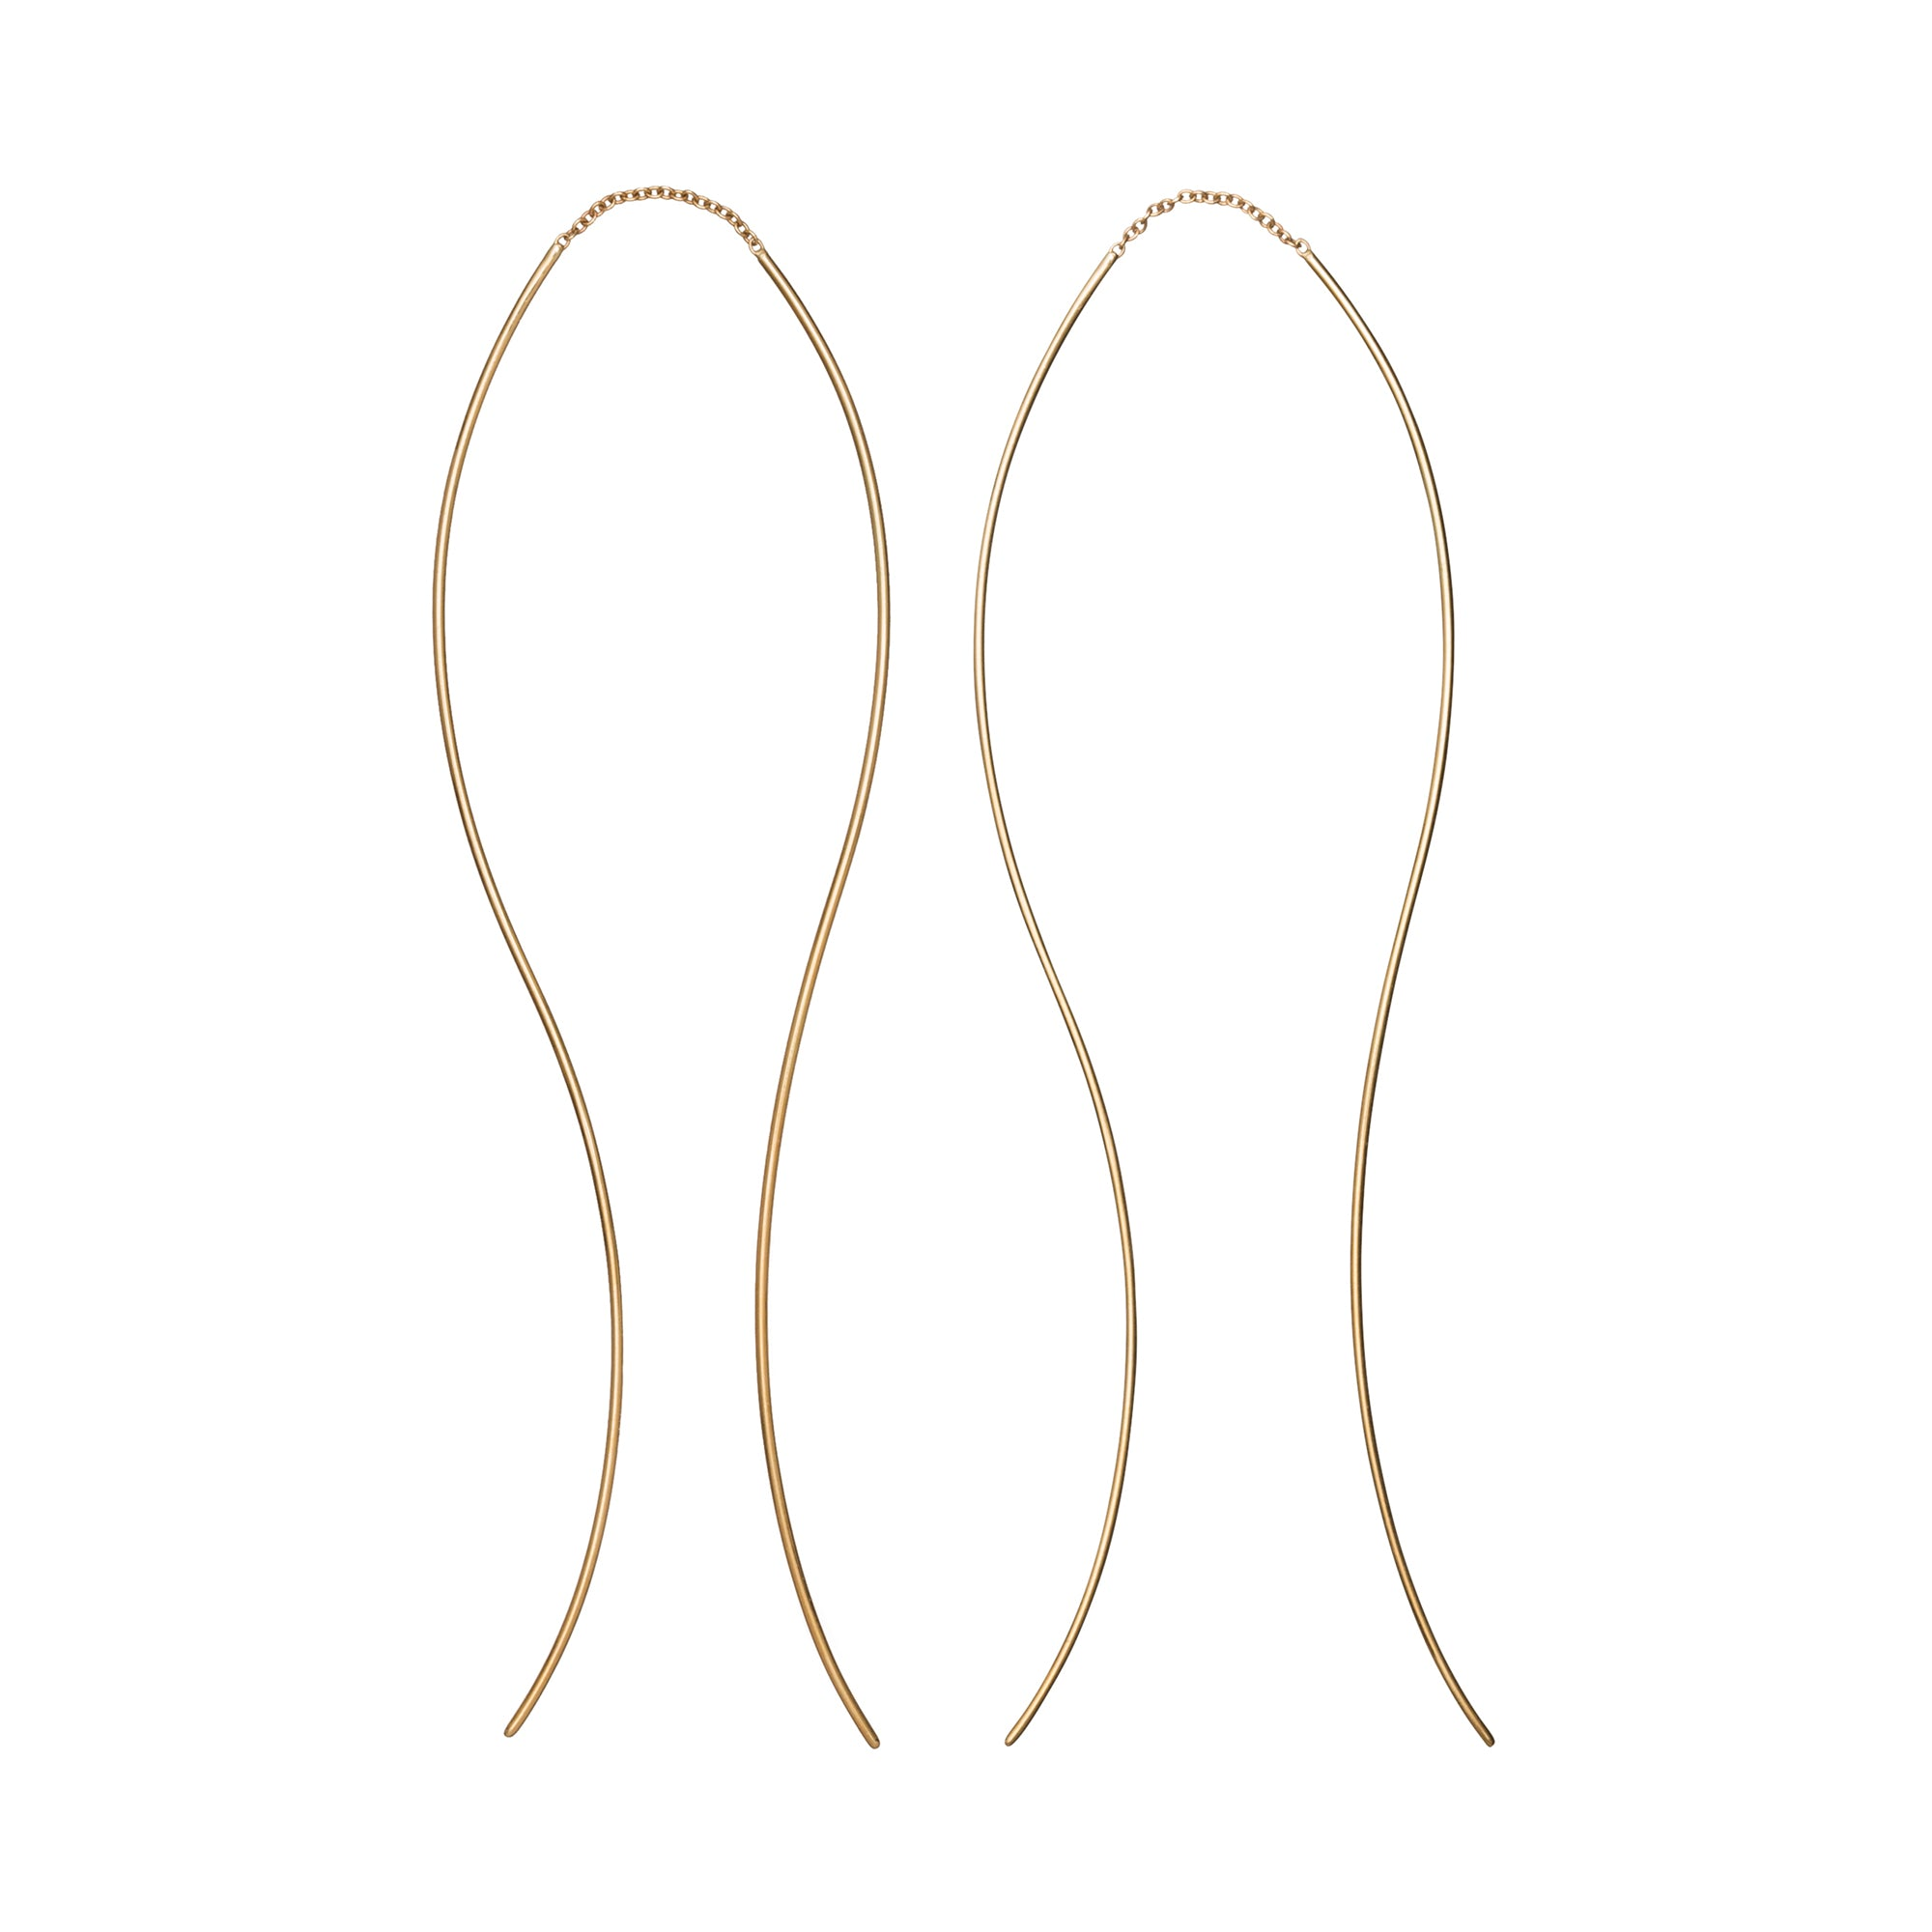 Frequency Pull Through Earrings by Suel for Broken English Jewelry